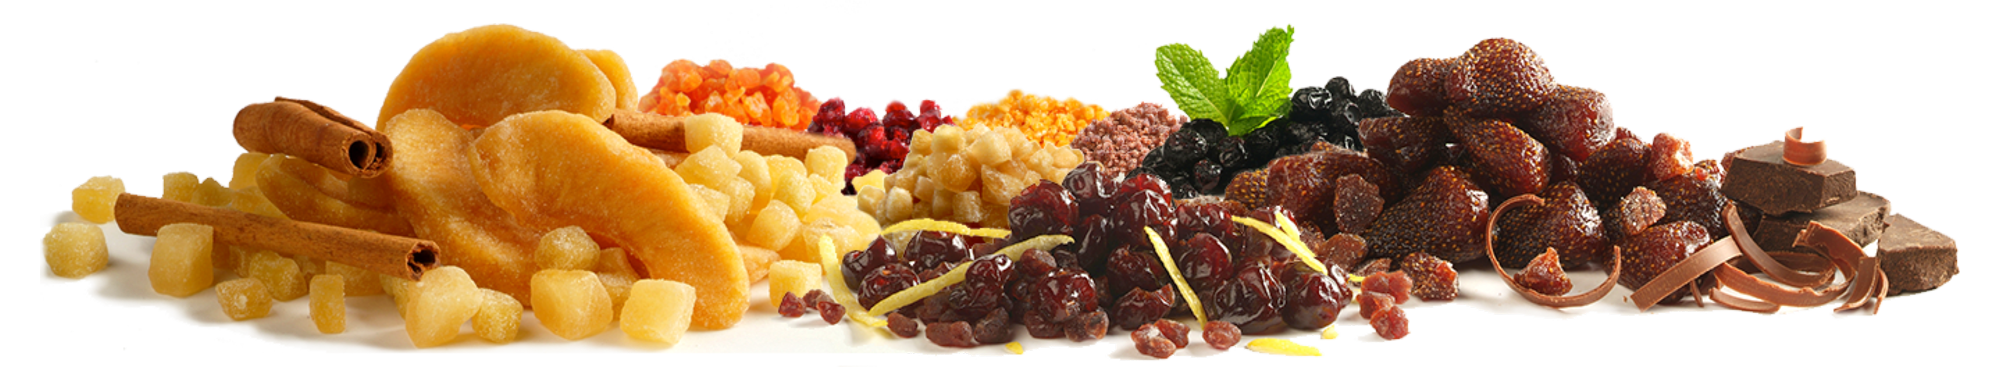 Dried fruit png. Home meduri farms natural